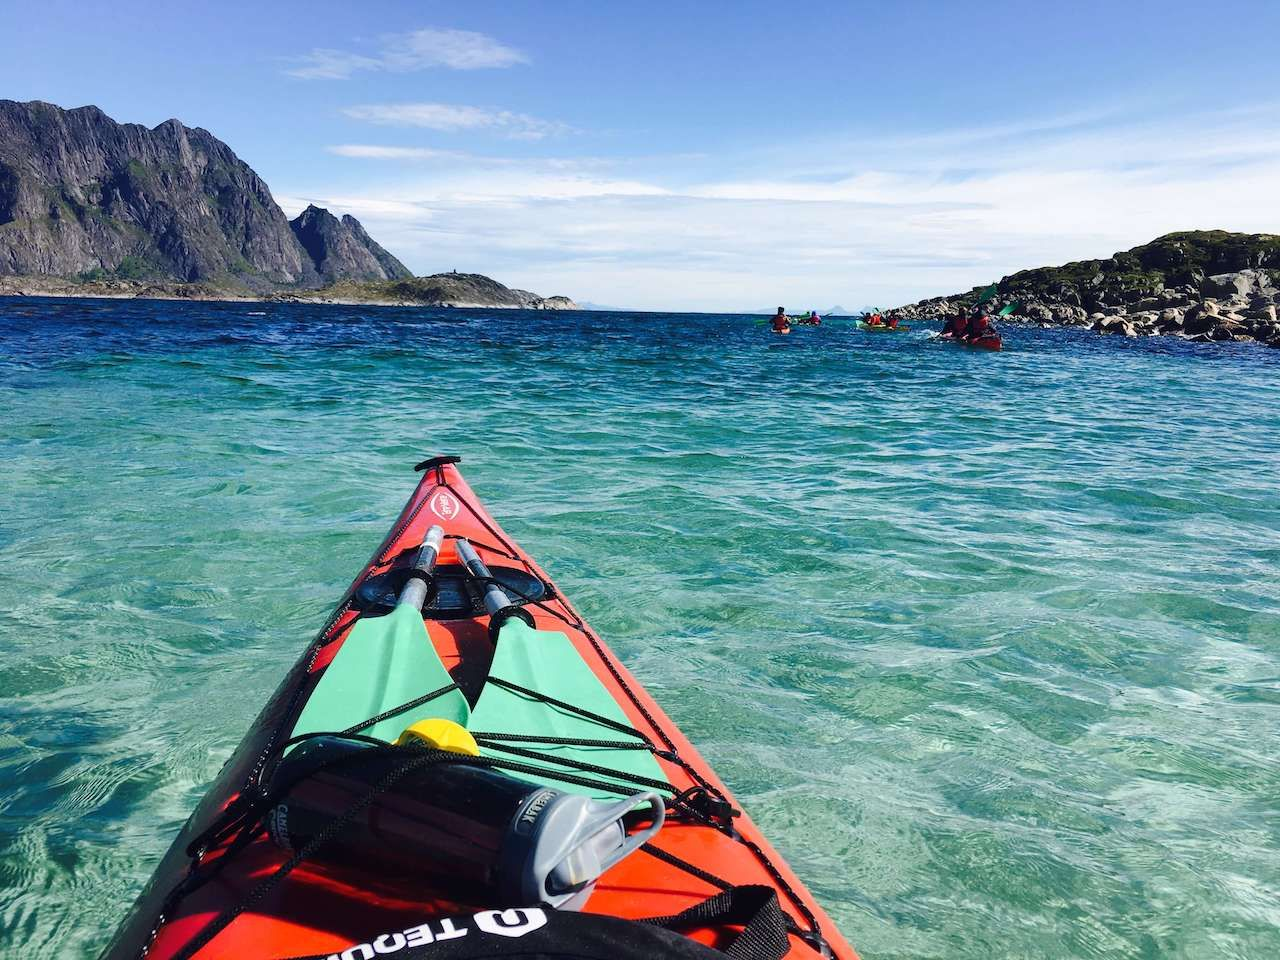 Kayaking Lofoten